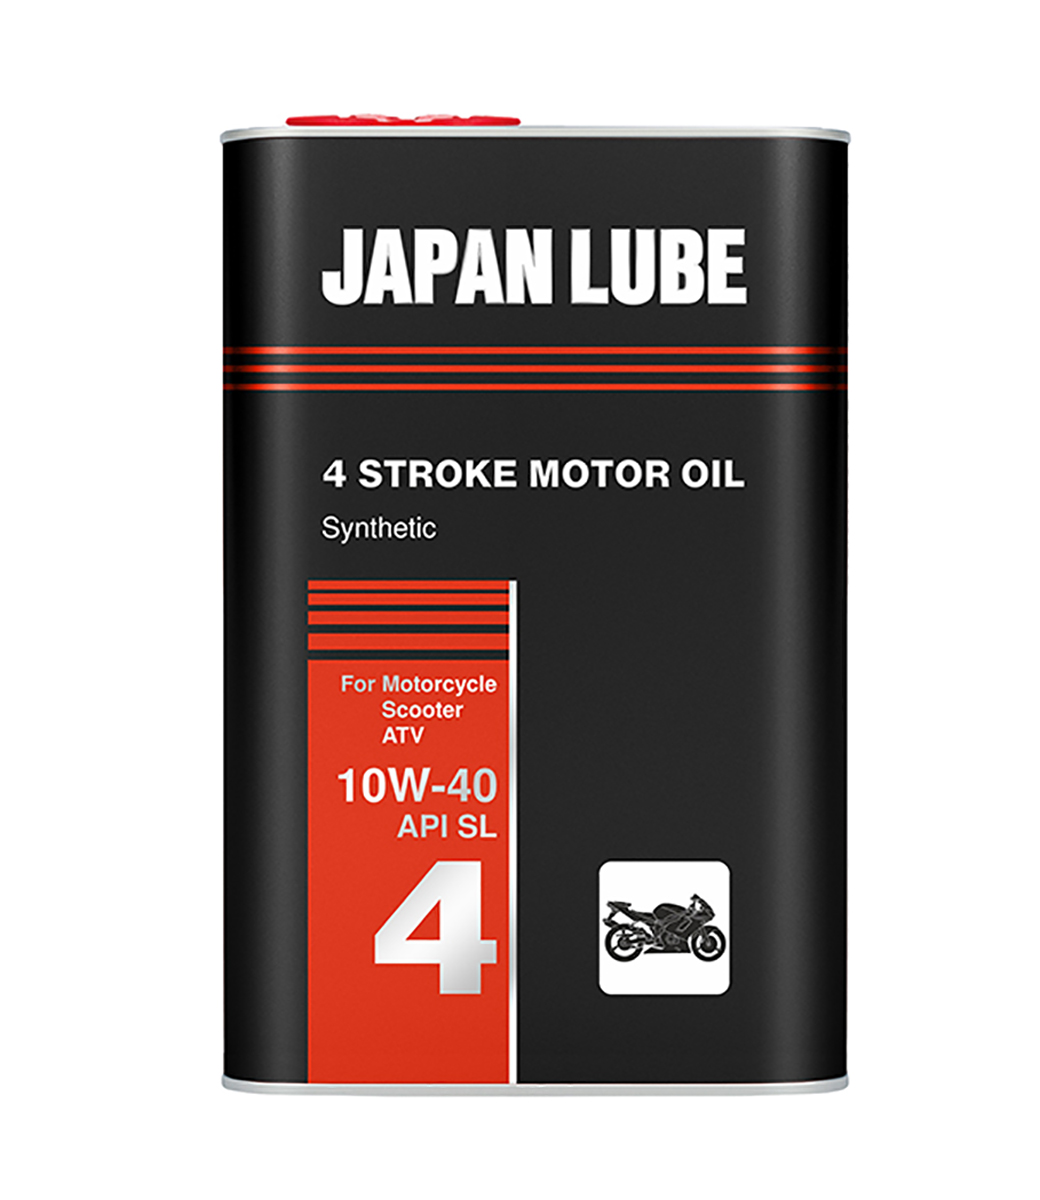 JAPAN LUBE 4-STROKE MOTOR OIL 10W-40